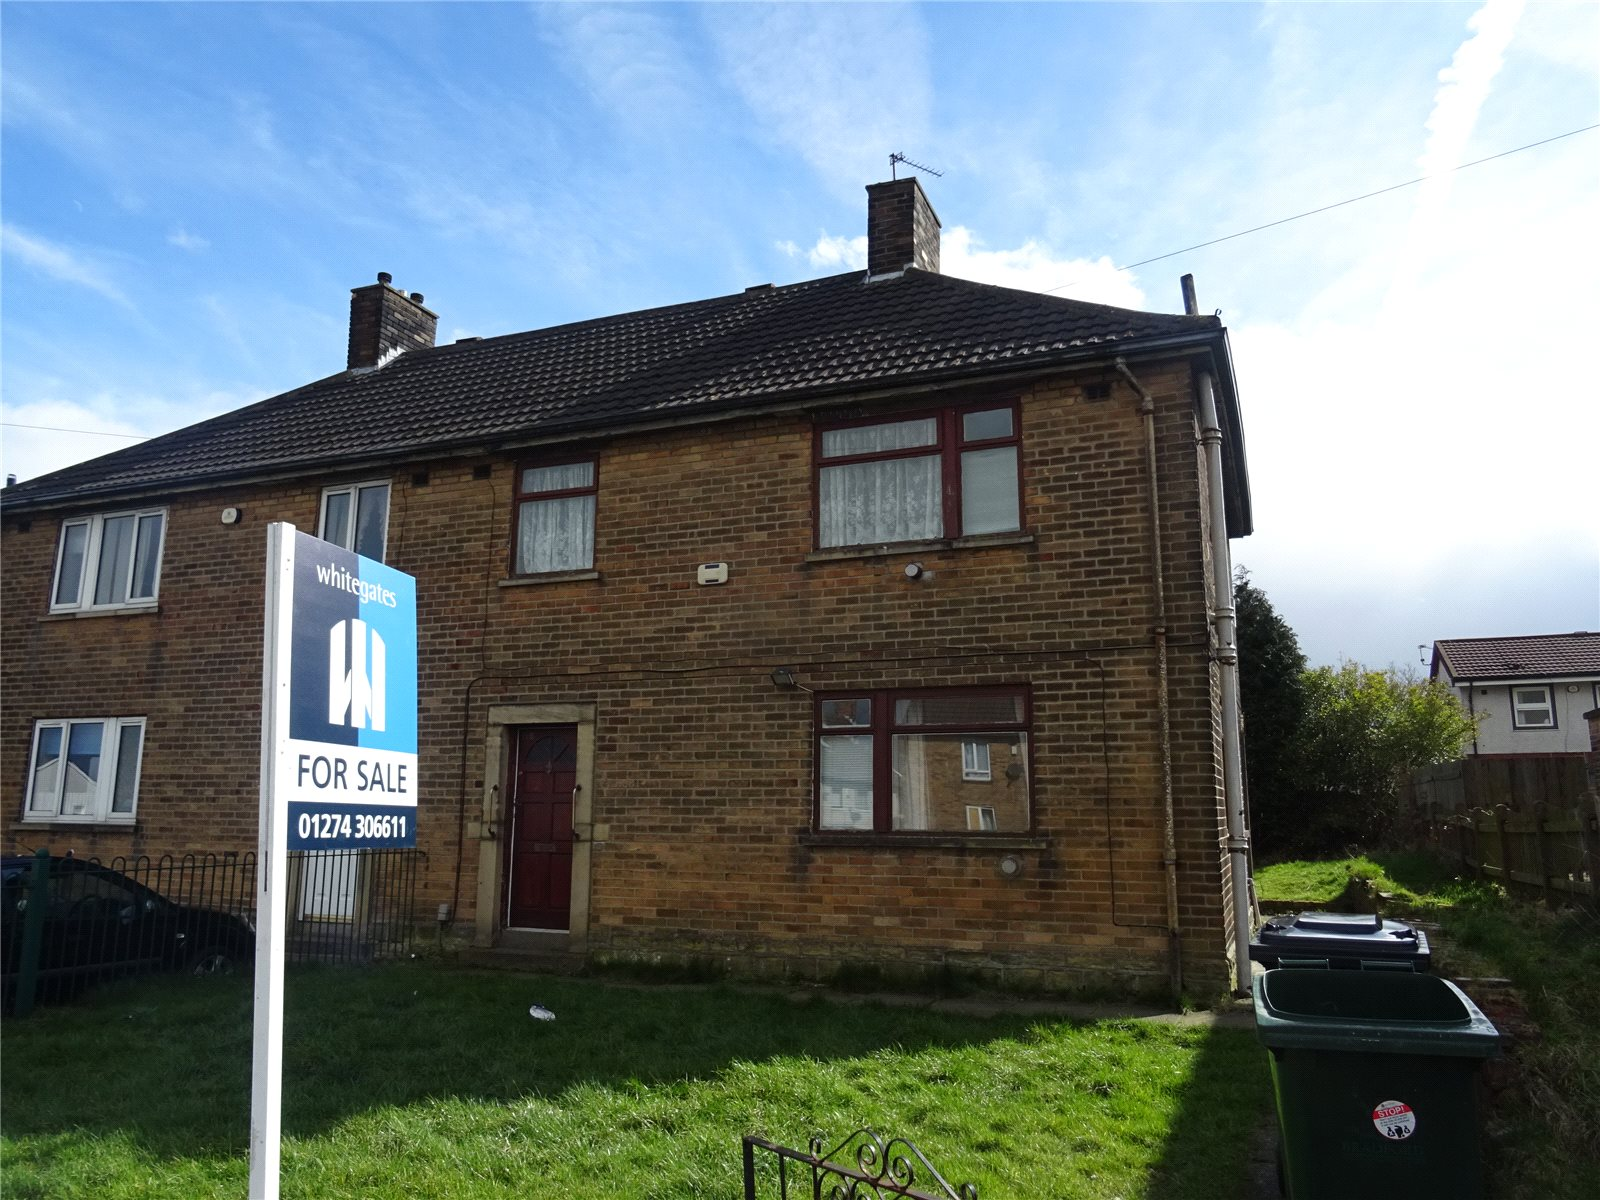 Whitegatesdford 3 Bedroom House For Sale Inley Roaddford West Yorkshire Bd2 Whitegates